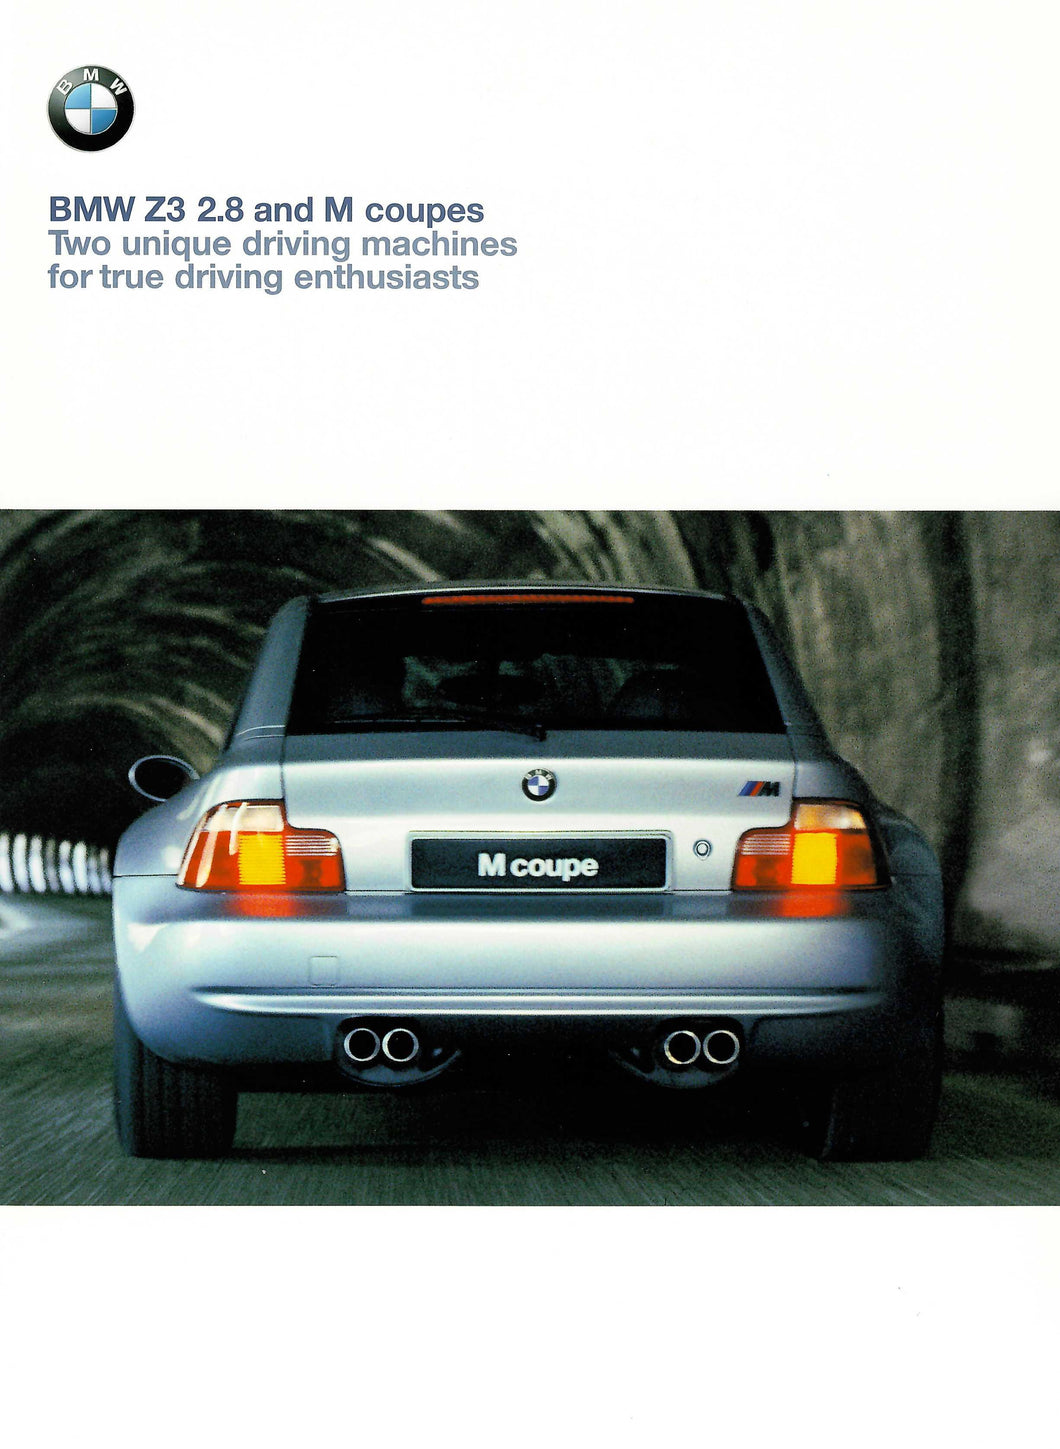 Brochure - The BMW Z3 2.8 and M coupes (E36/7)